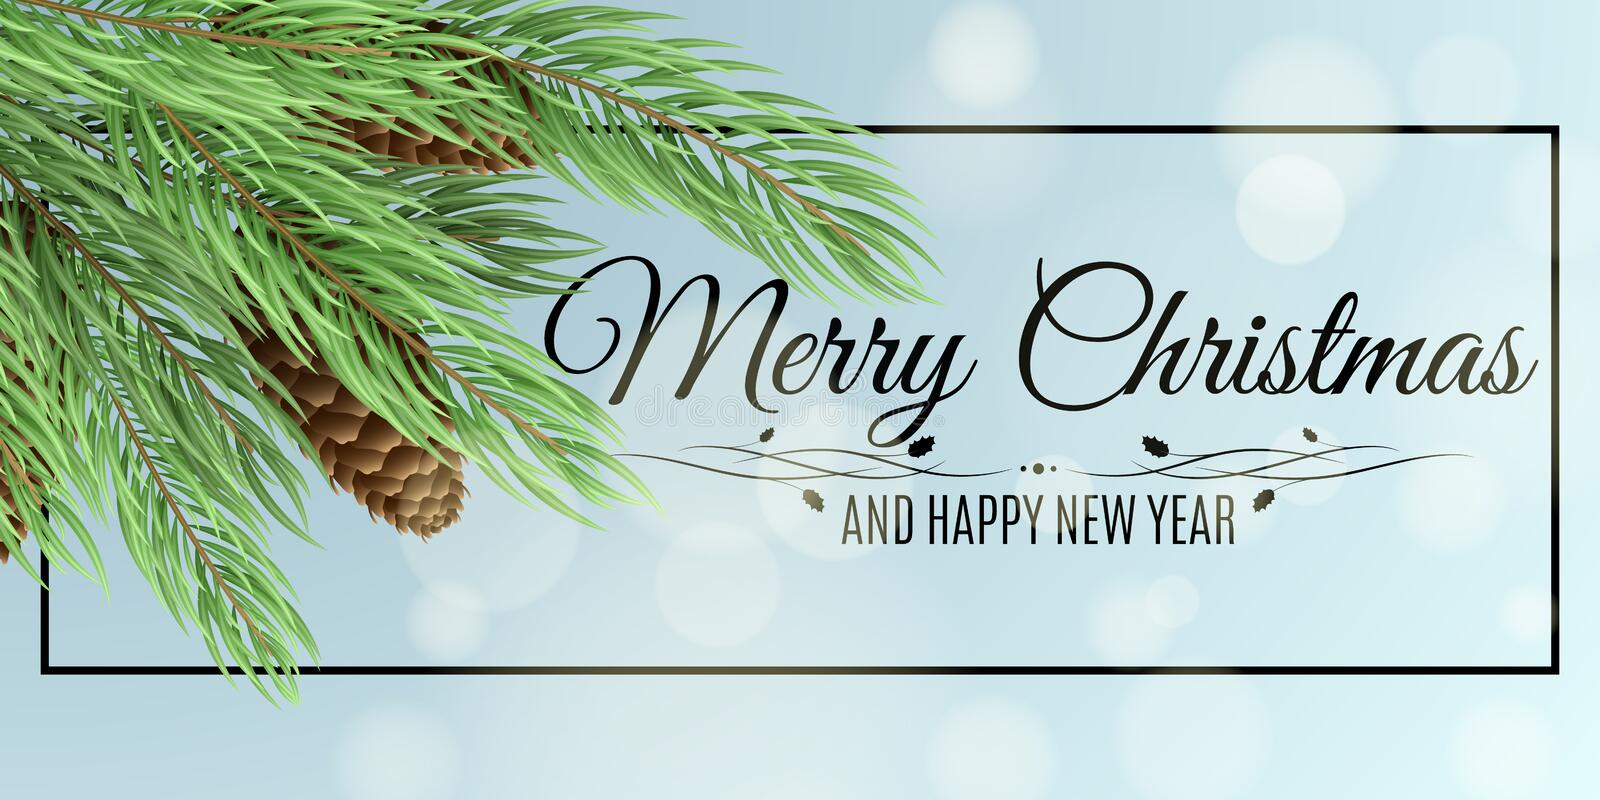 Merry Christmas banner. Christmas tree with cones. Glares bokeh. Vector illustration. Black frame with text. Winter background for vector illustration